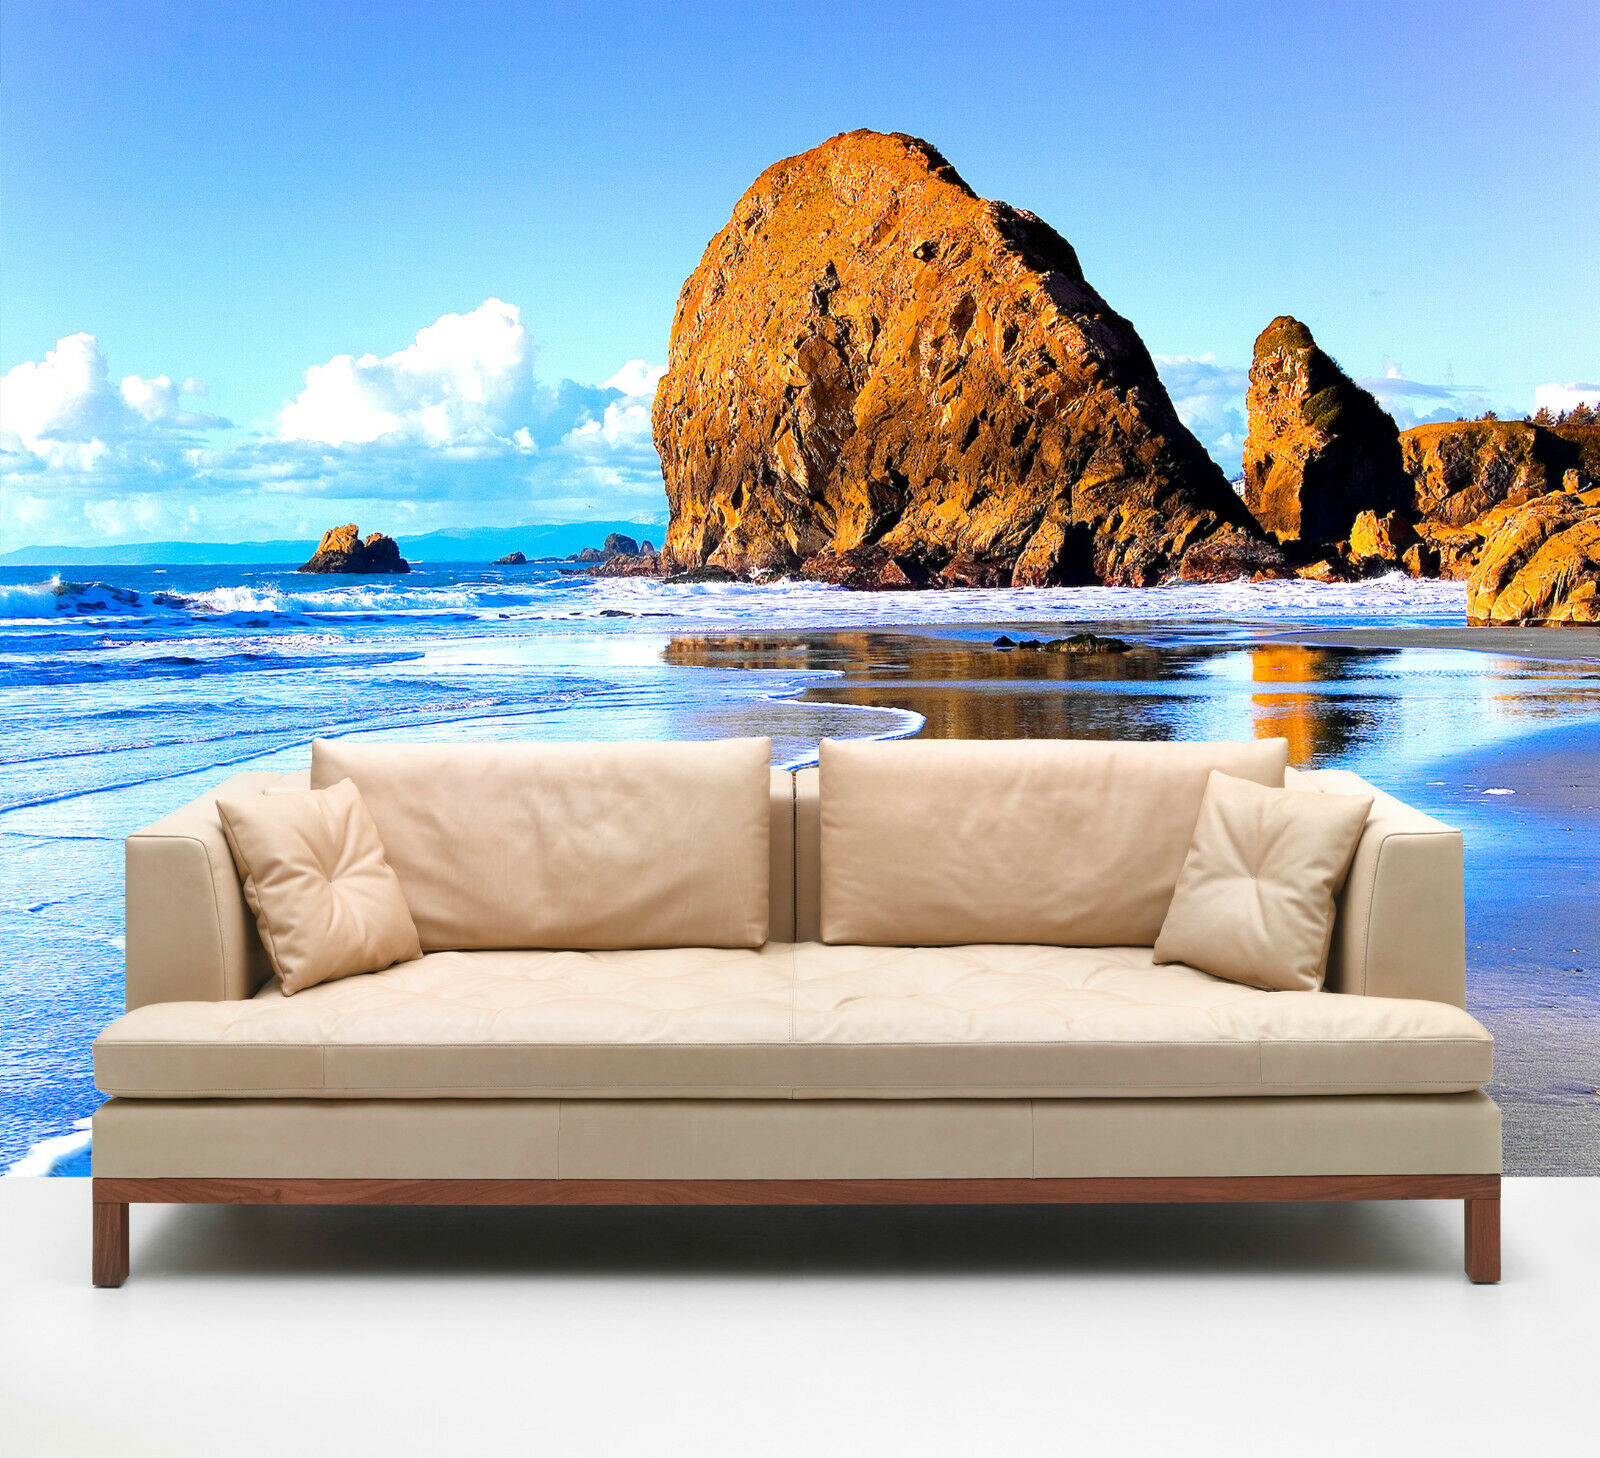 3D Reef sea sun 1 WallPaper Murals Wall Print Decal Wall Deco AJ WALLPAPER